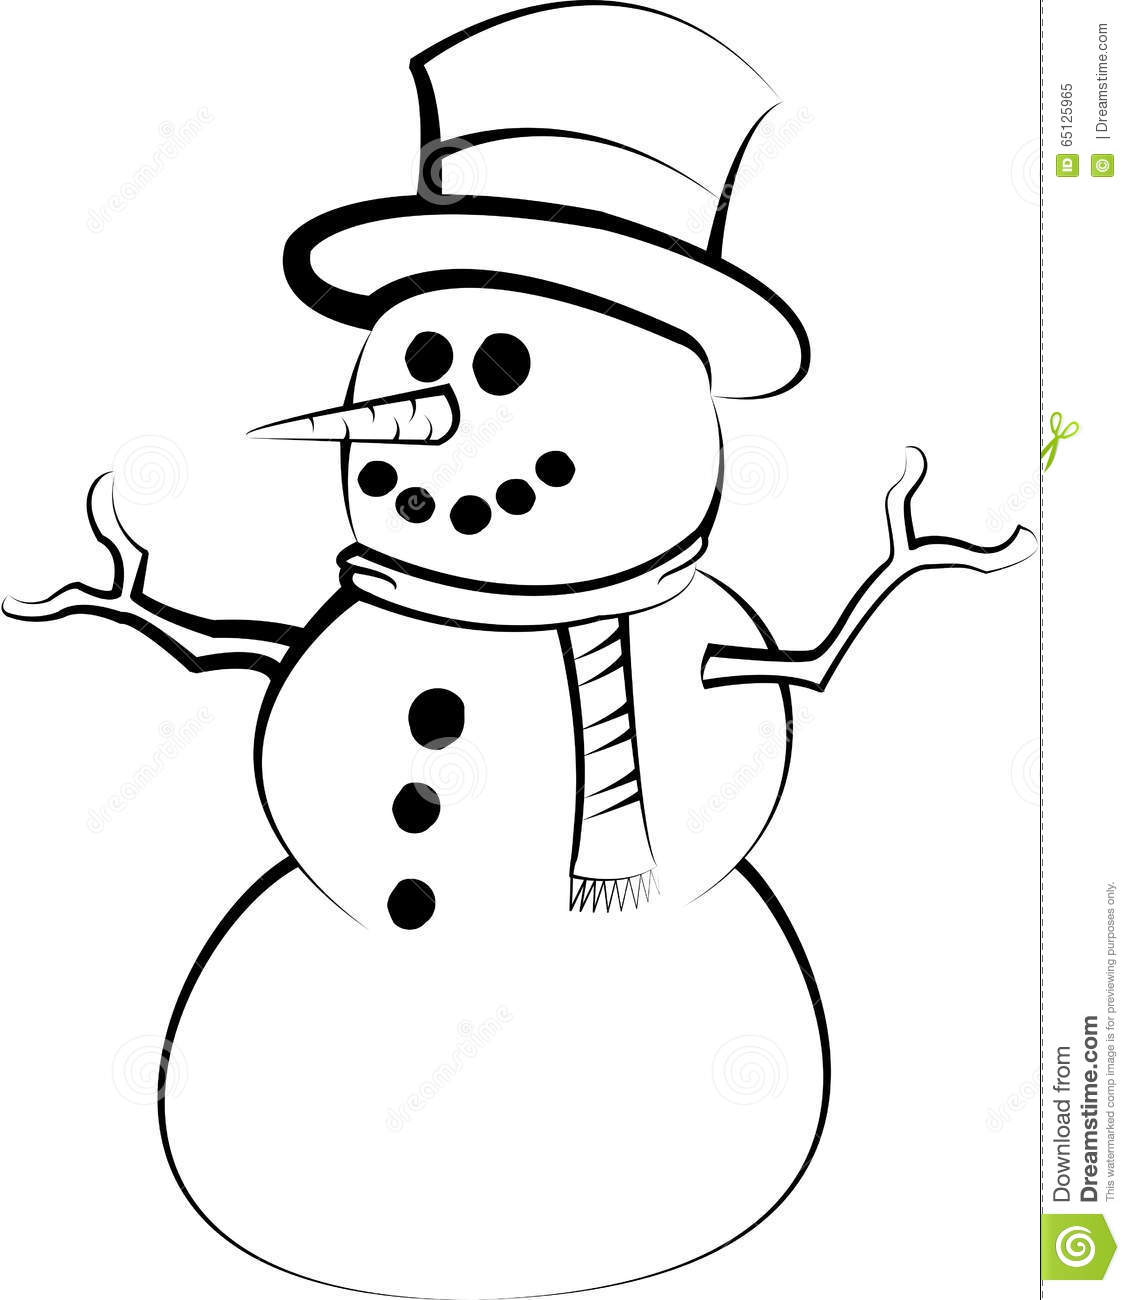 Snowman Drawing Stock Vector Illustration Of Vintage